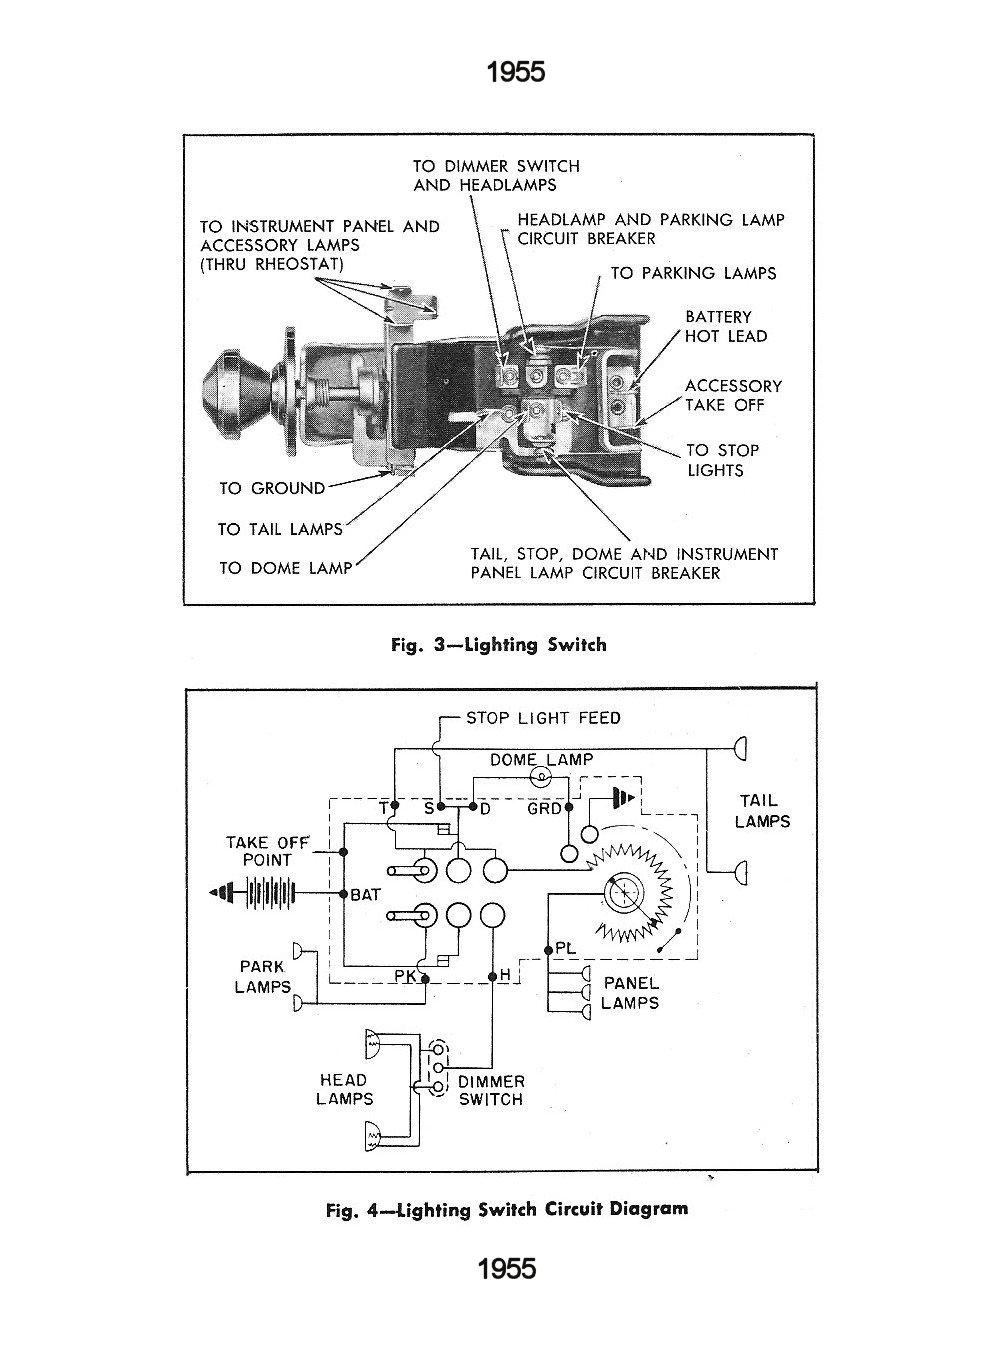 Chevy Light Switch Wiring - Wiring Diagram Go on 1966 chevelle wiring schematic, 1970 chevelle starter wiring diagram, 2010 camaro starter wiring diagram, 1964 chevelle starter wiring diagram, 1969 chevelle starter wiring diagram, 1971 chevelle starter wiring diagram, 1972 chevelle starter wiring diagram, 1967 chevelle starter wiring diagram, 1965 chevelle starter wiring diagram, 1972 camaro starter wiring diagram,